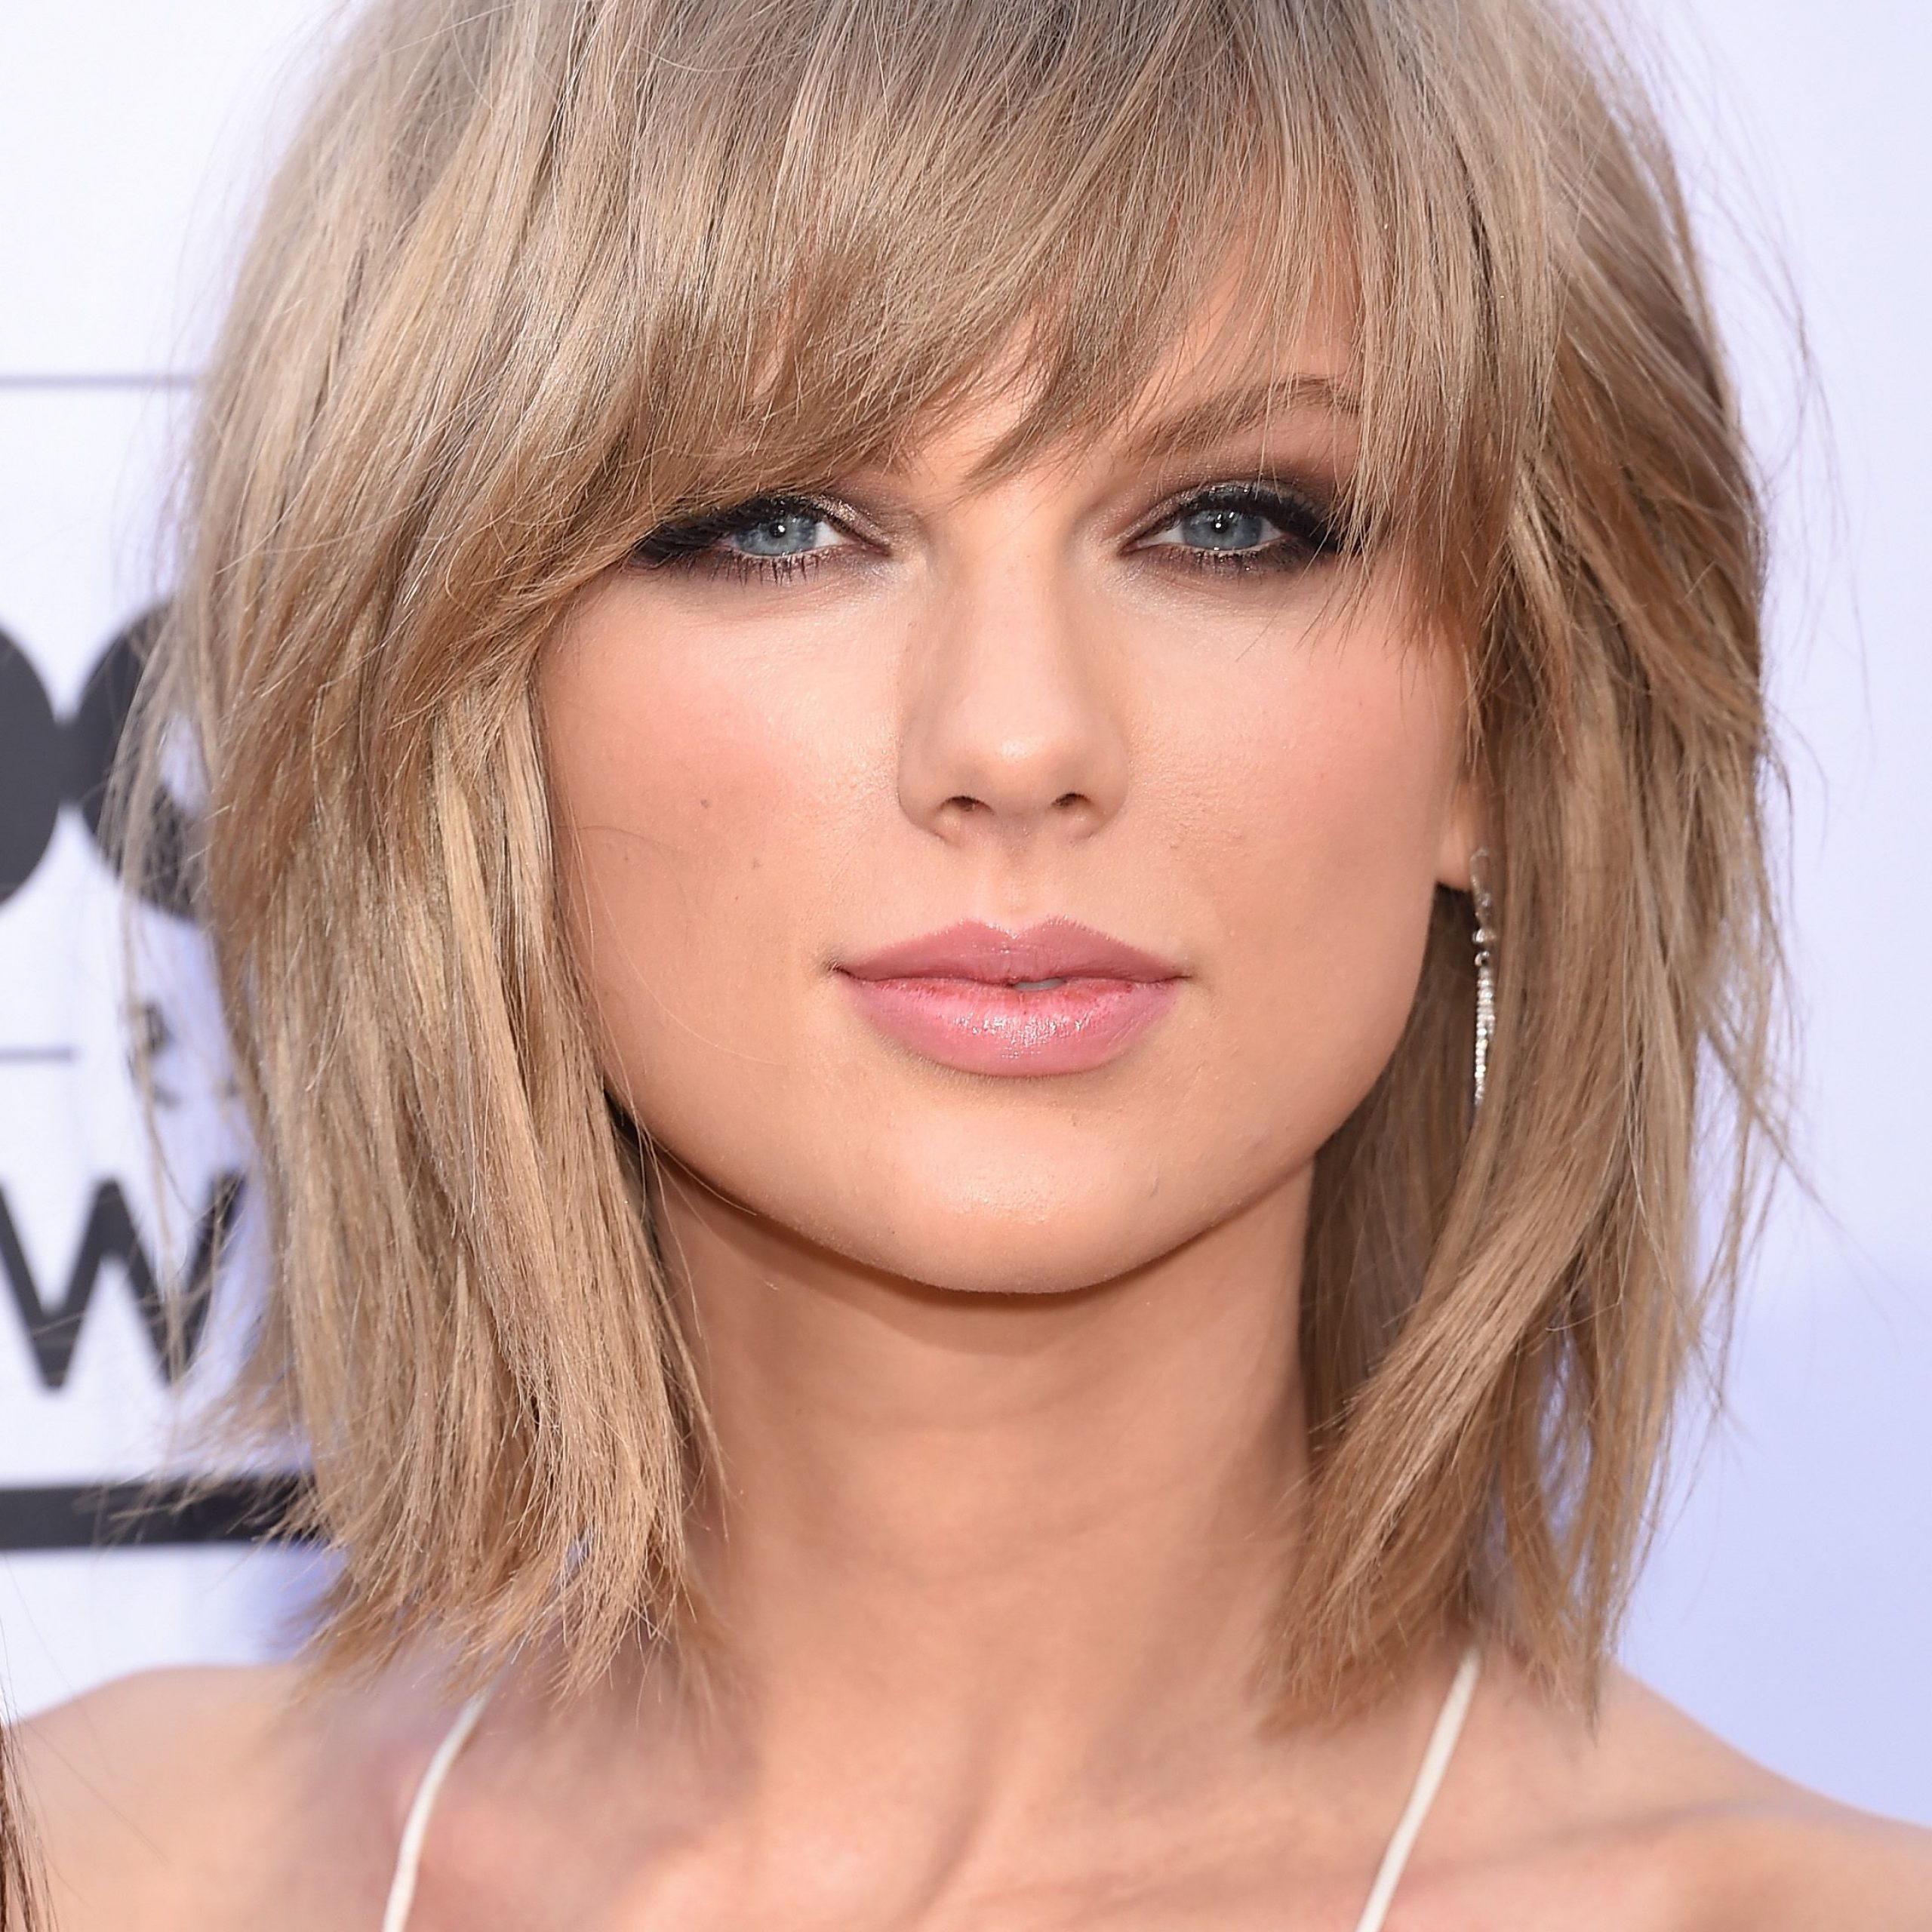 32 Celebrity Shag Haircut Ideas – Shag Hairstyle Long And Short Regarding Current Short Shag Haircuts With Side Bangs (View 10 of 20)